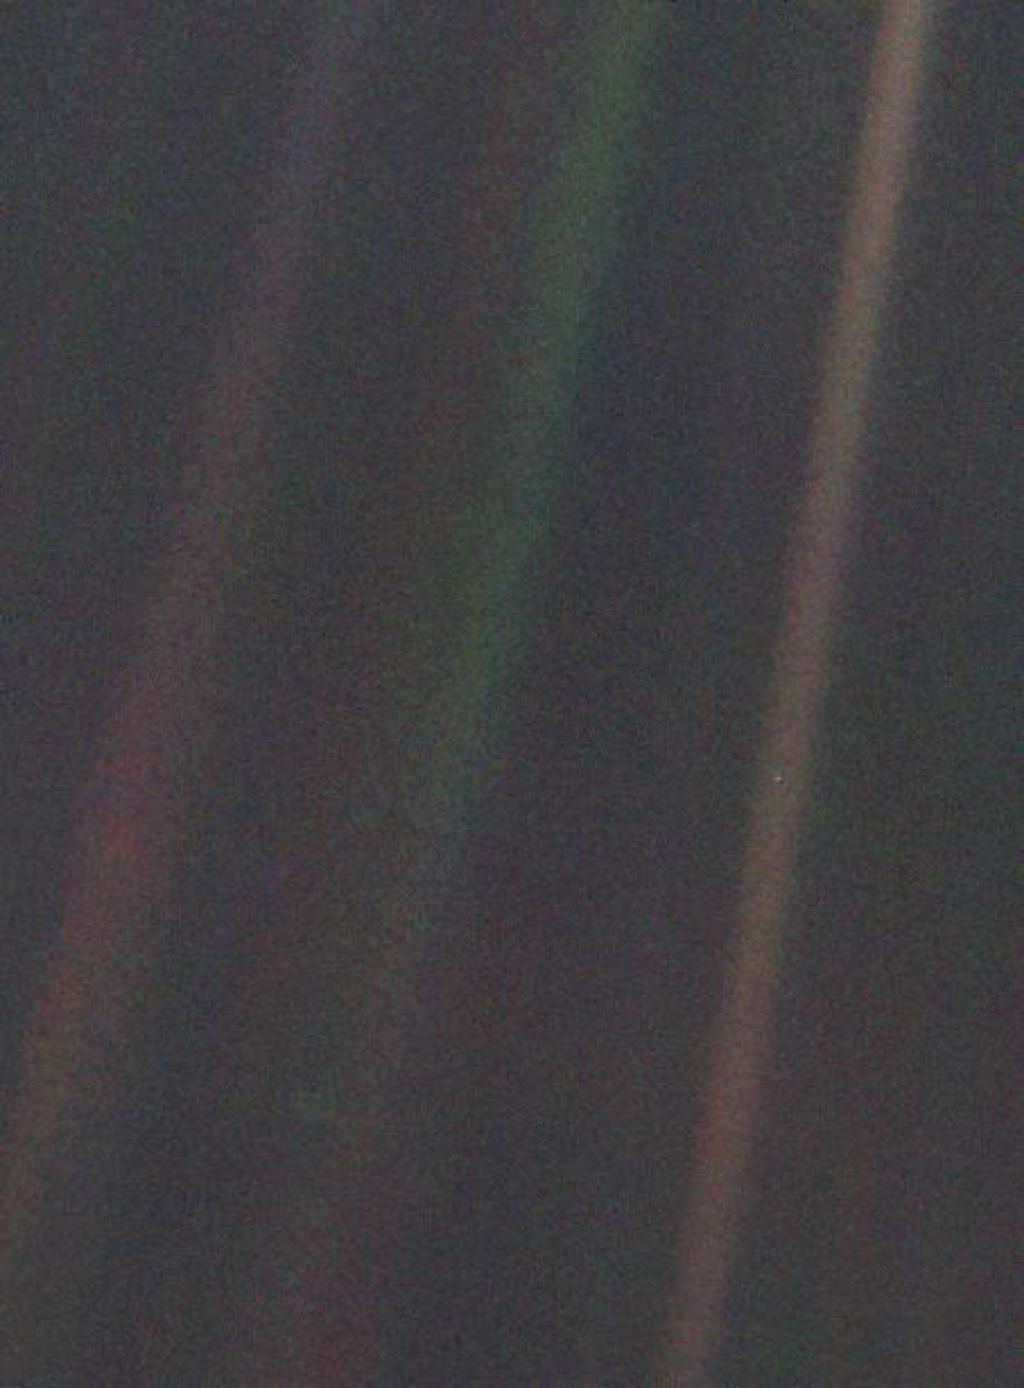 Earth Nasa Pale Blue Dot